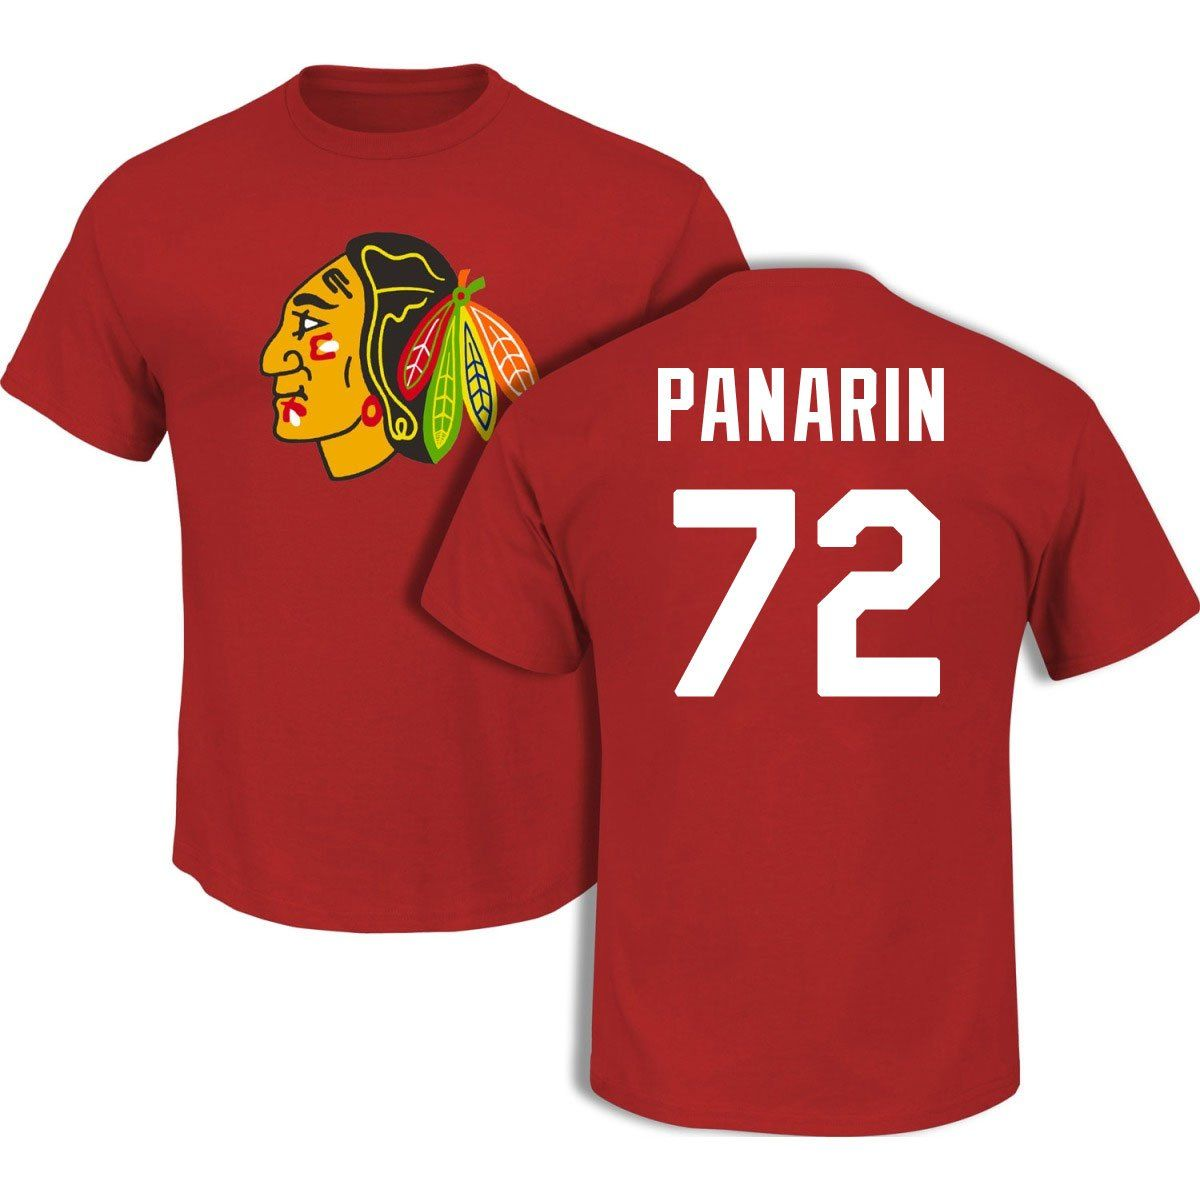 aa4d4a7c171 ... artemi panarin chicago blackhawks red player t shirt by reebok select  size small . ...